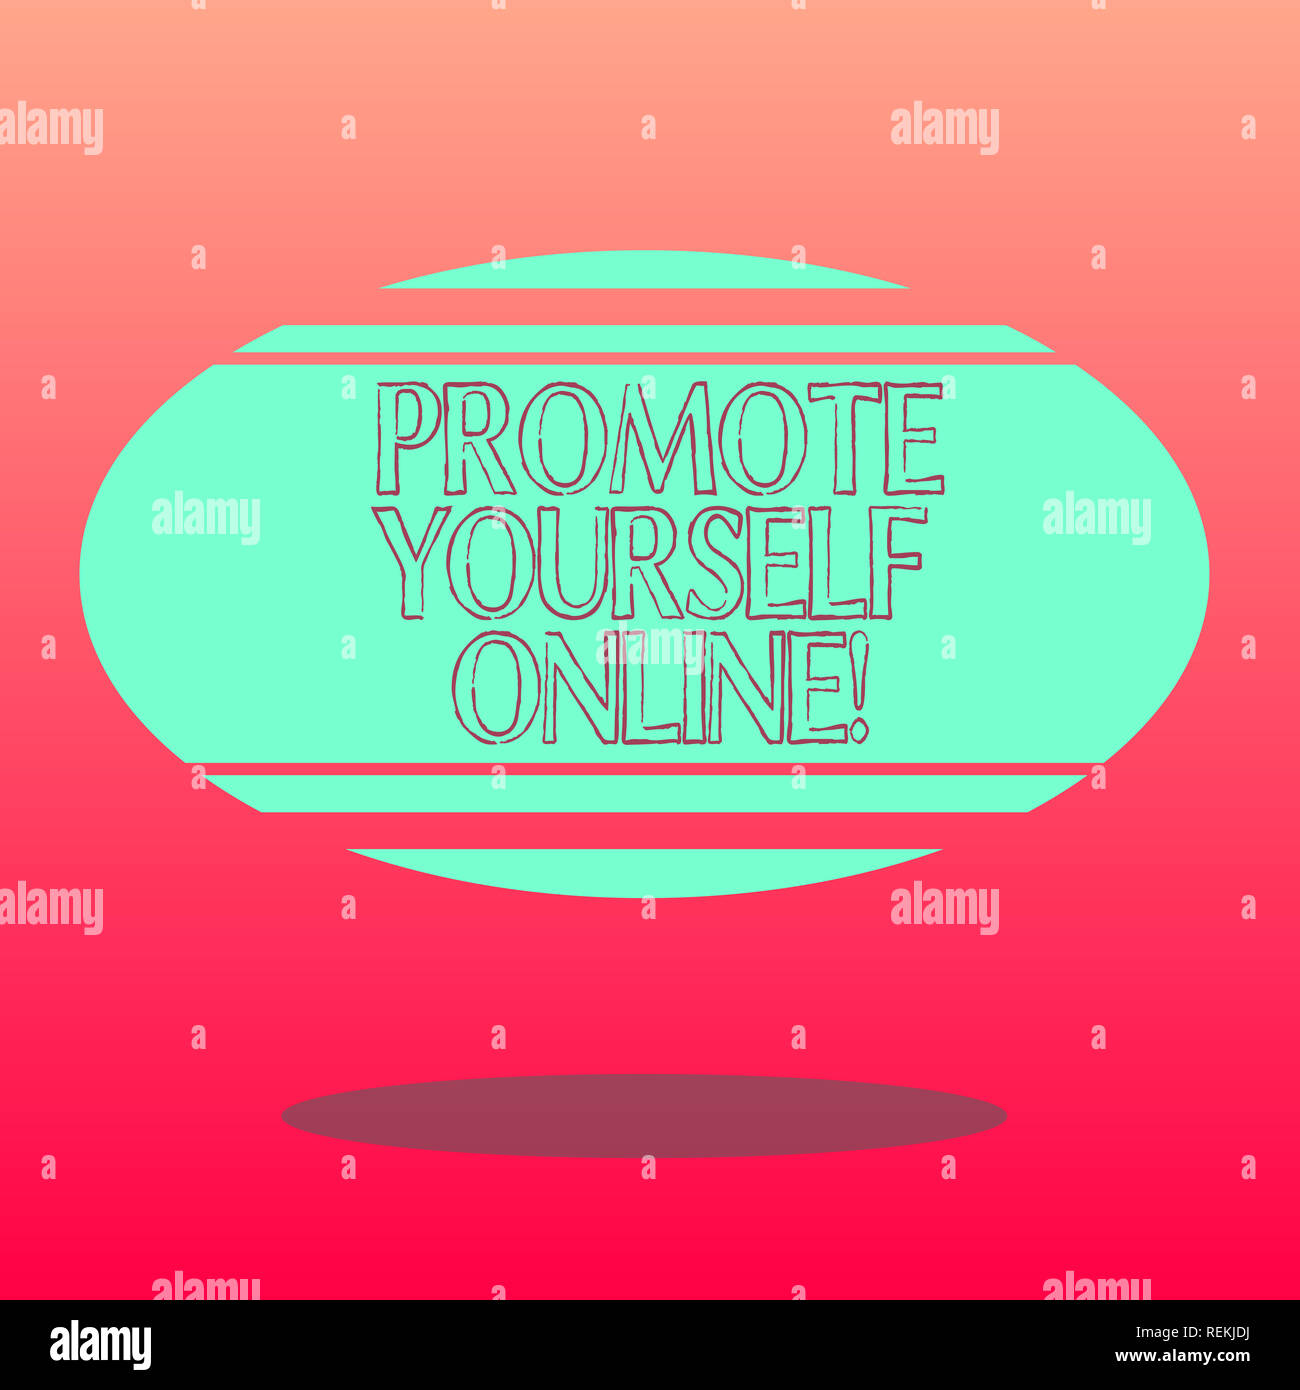 how to promote yourself online